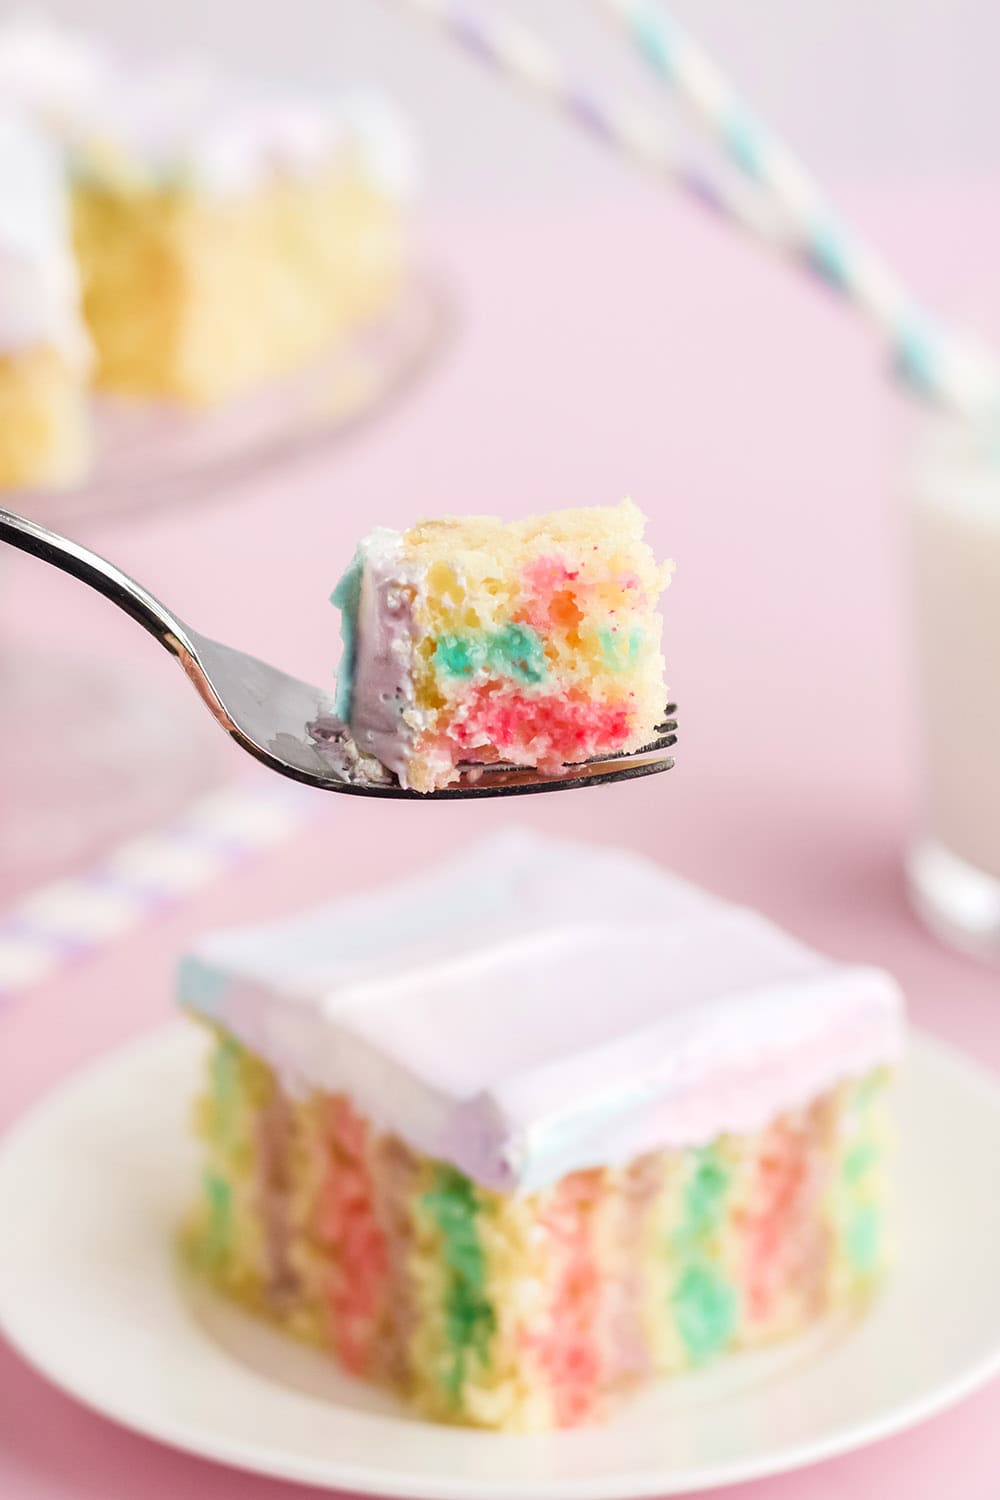 Fork with cake on it in front of a poke cake on a plate.